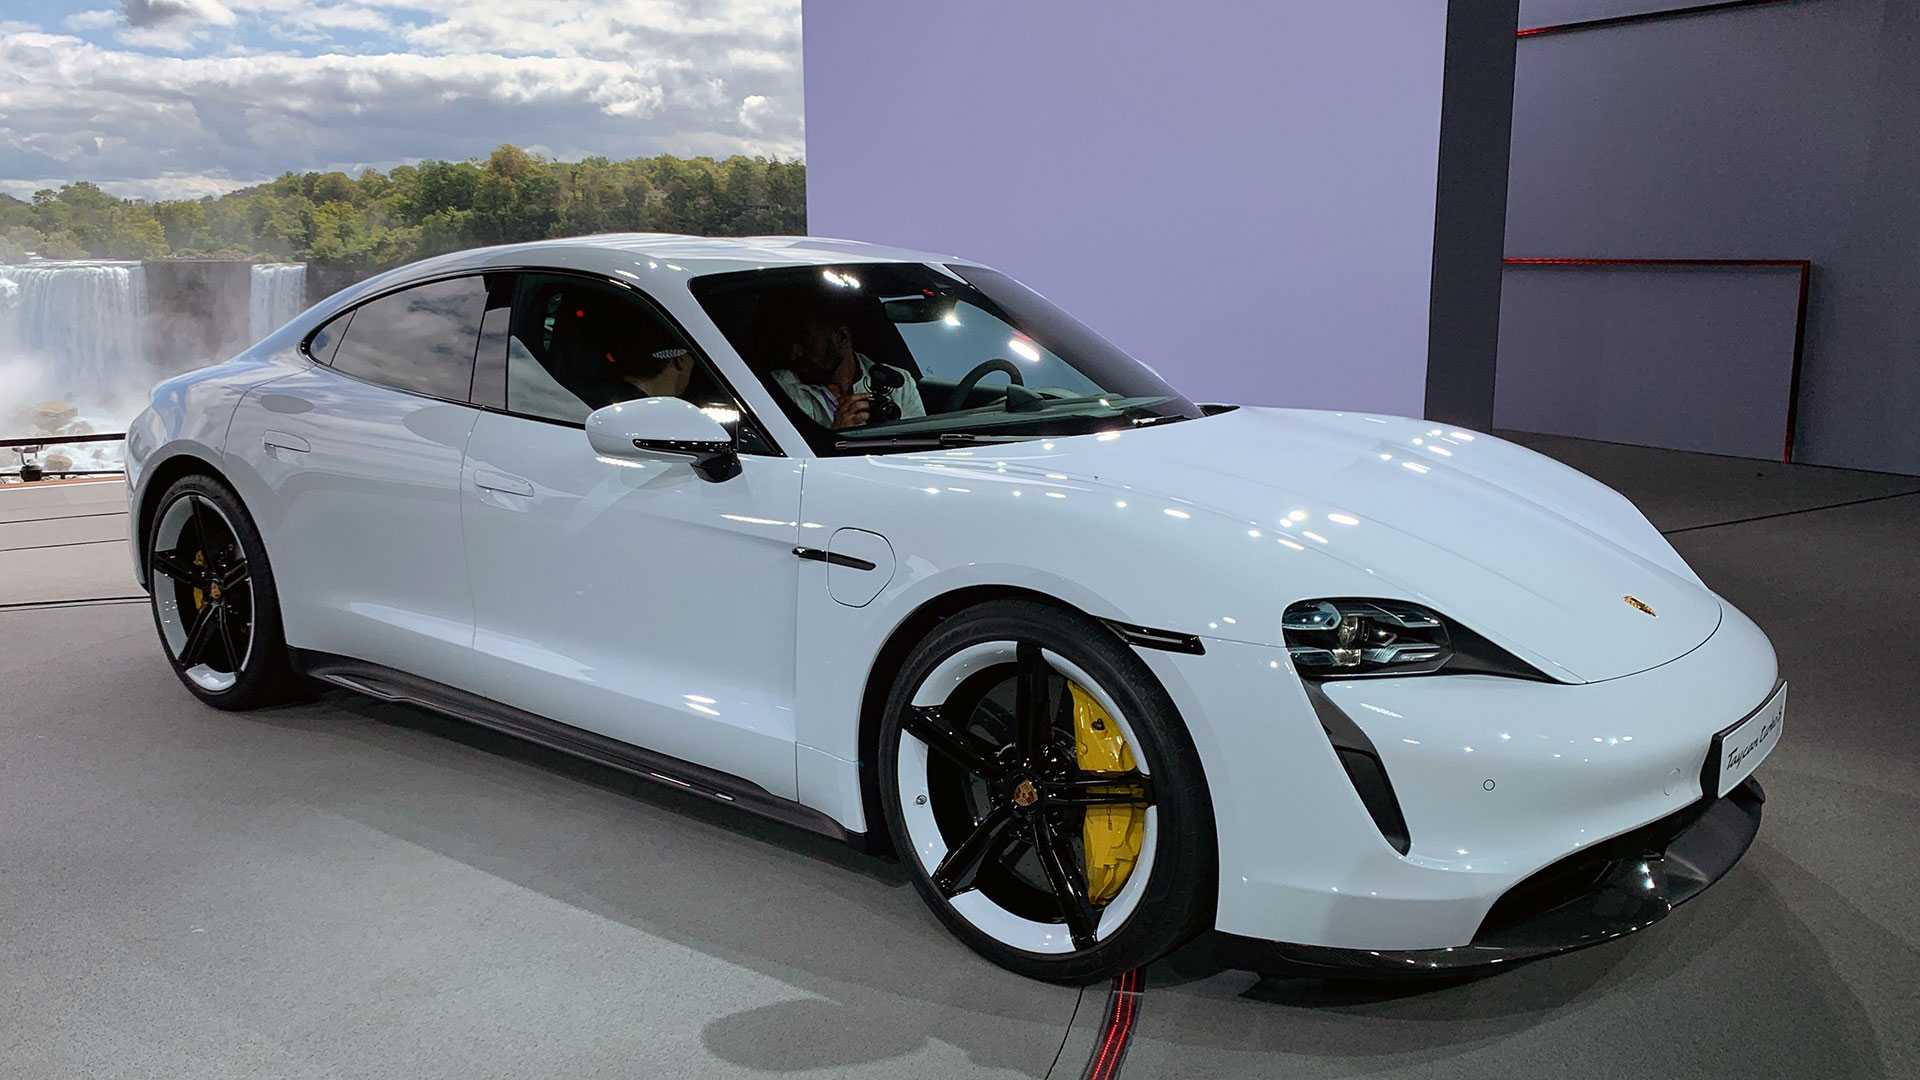 71 The Best 2020 Porsche Electric Car Exterior And Interior